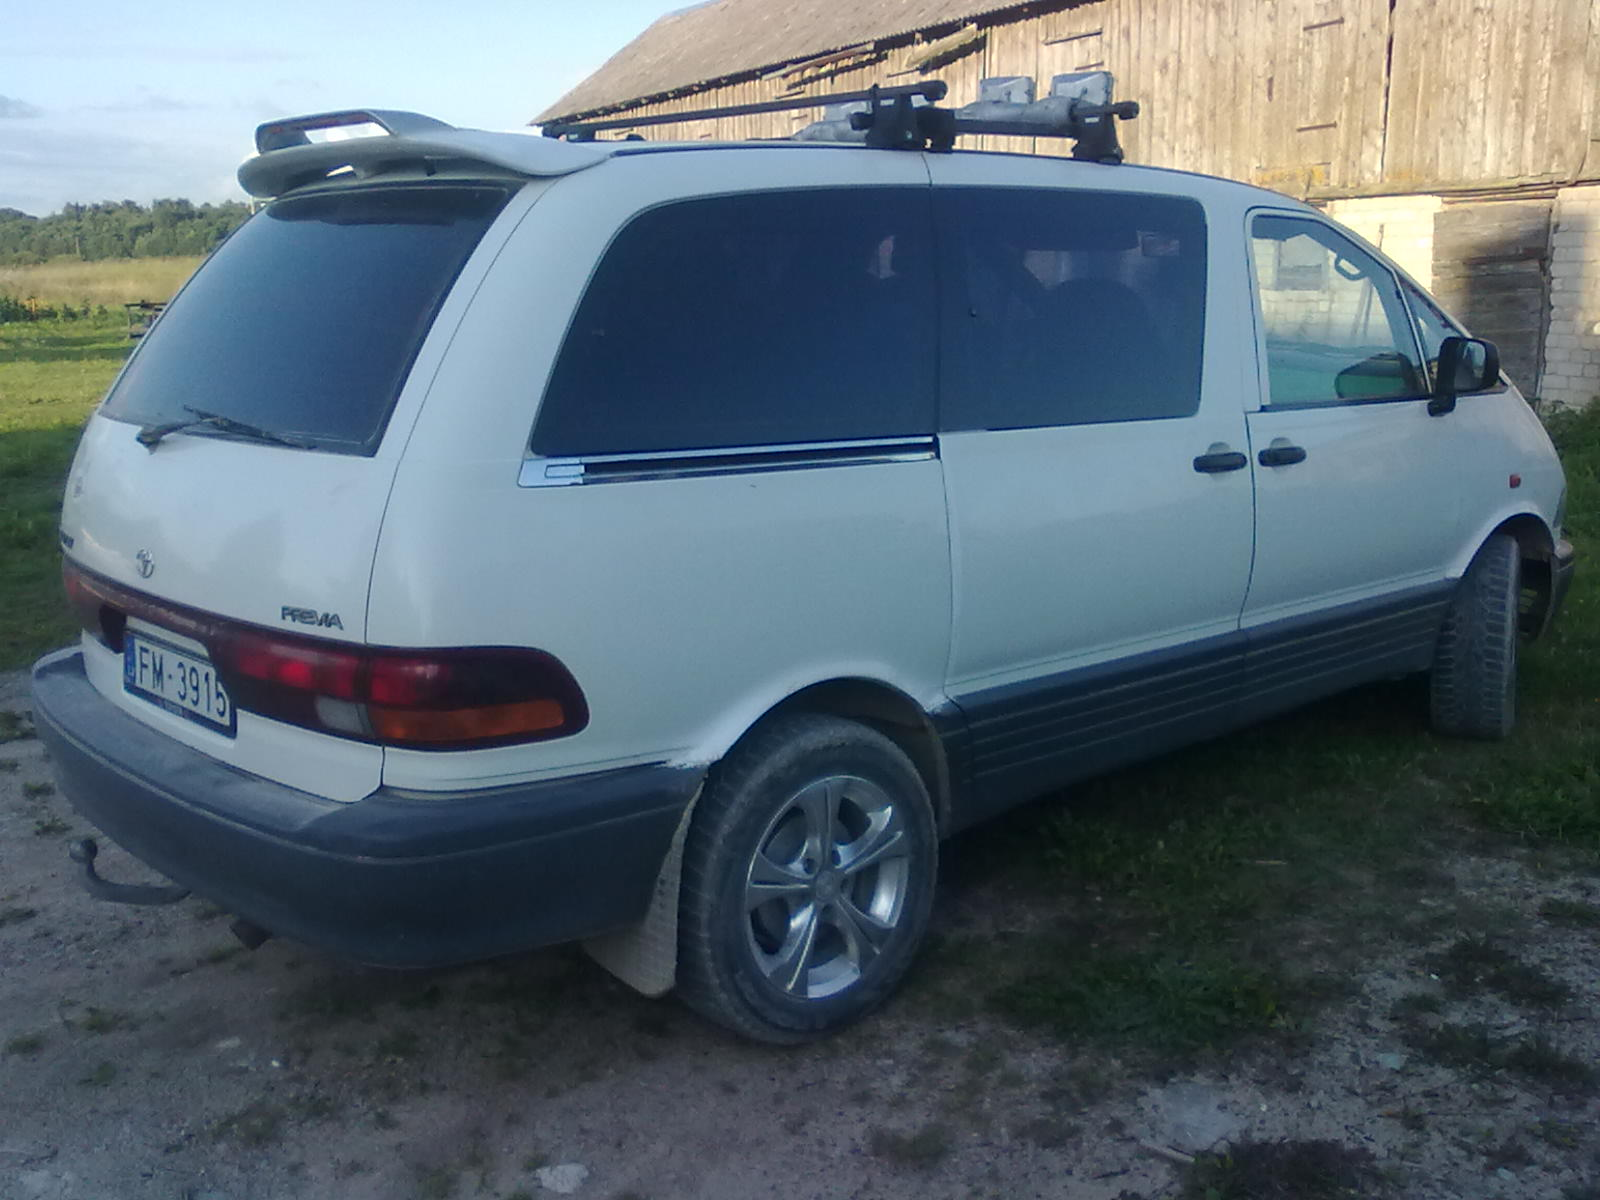 Toyota previa 1994 photo - 1